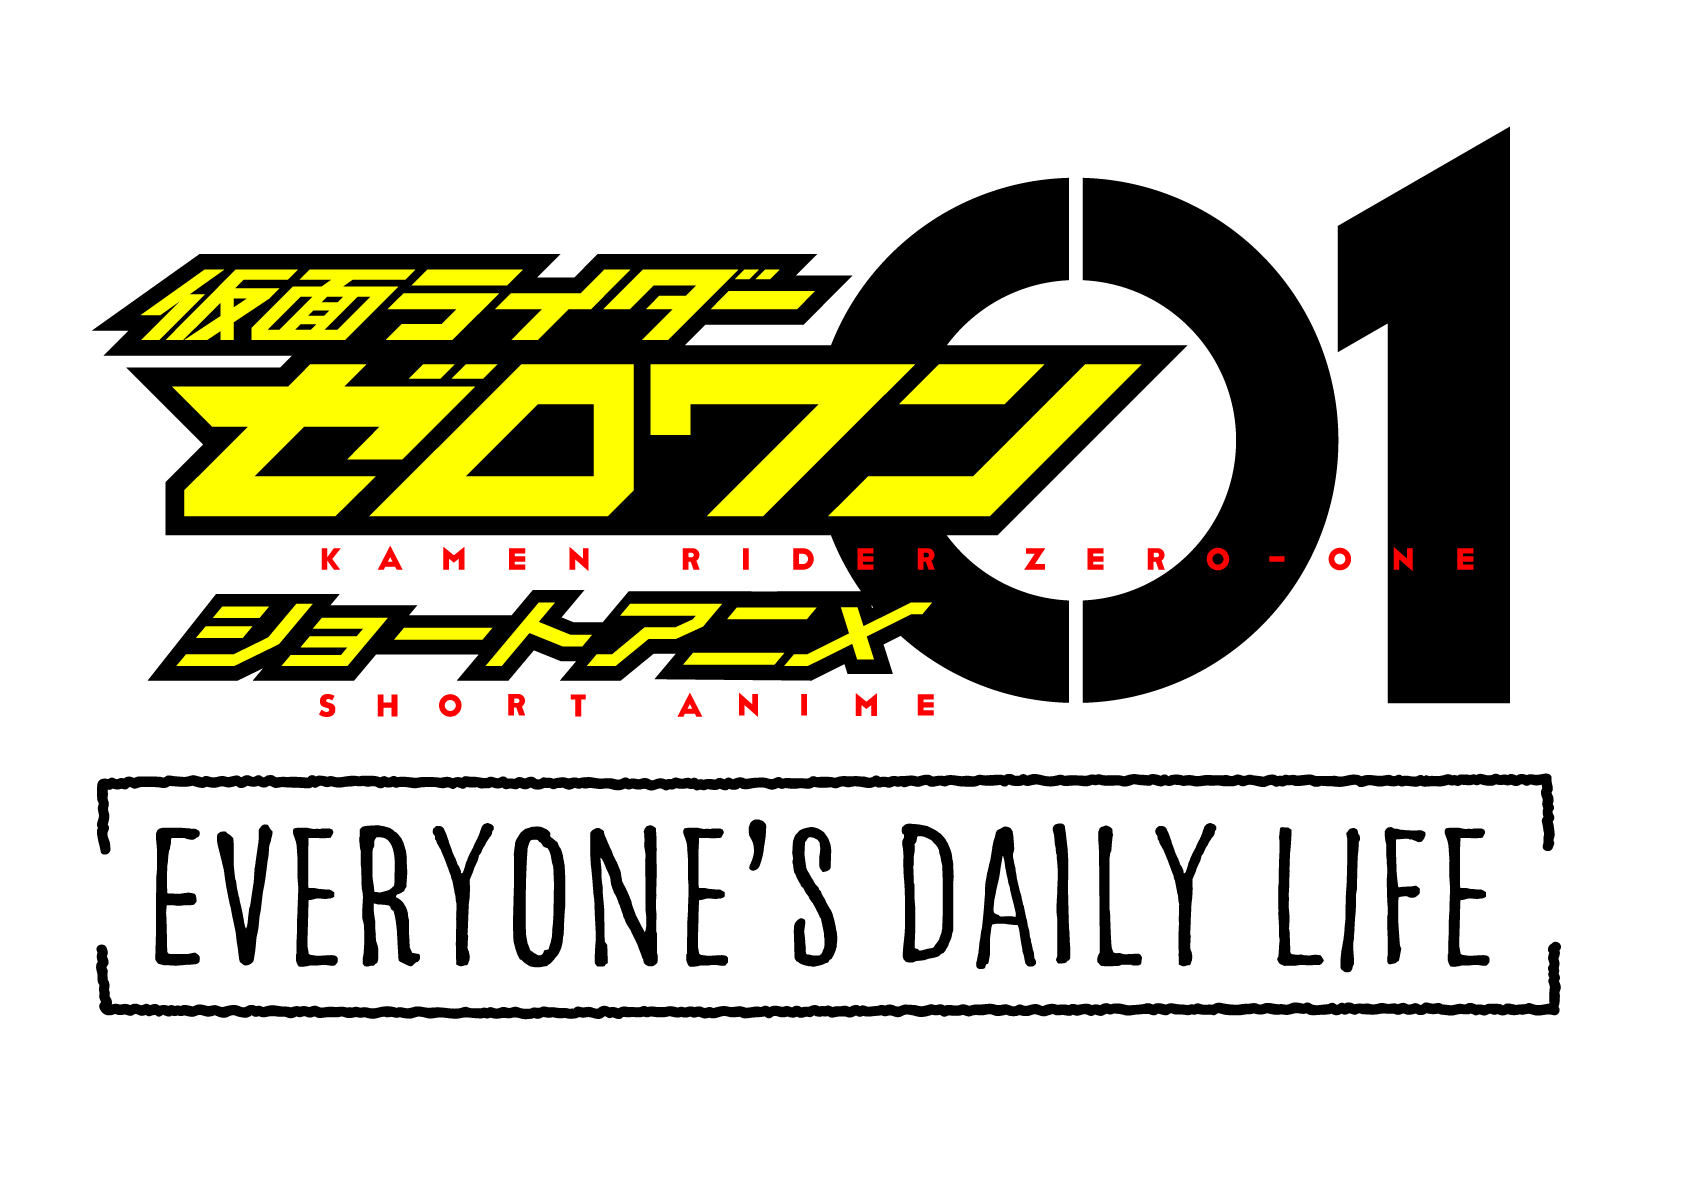 Kamen Rider Zero-One Short Anime - Everyone Daily Life English Sub Full